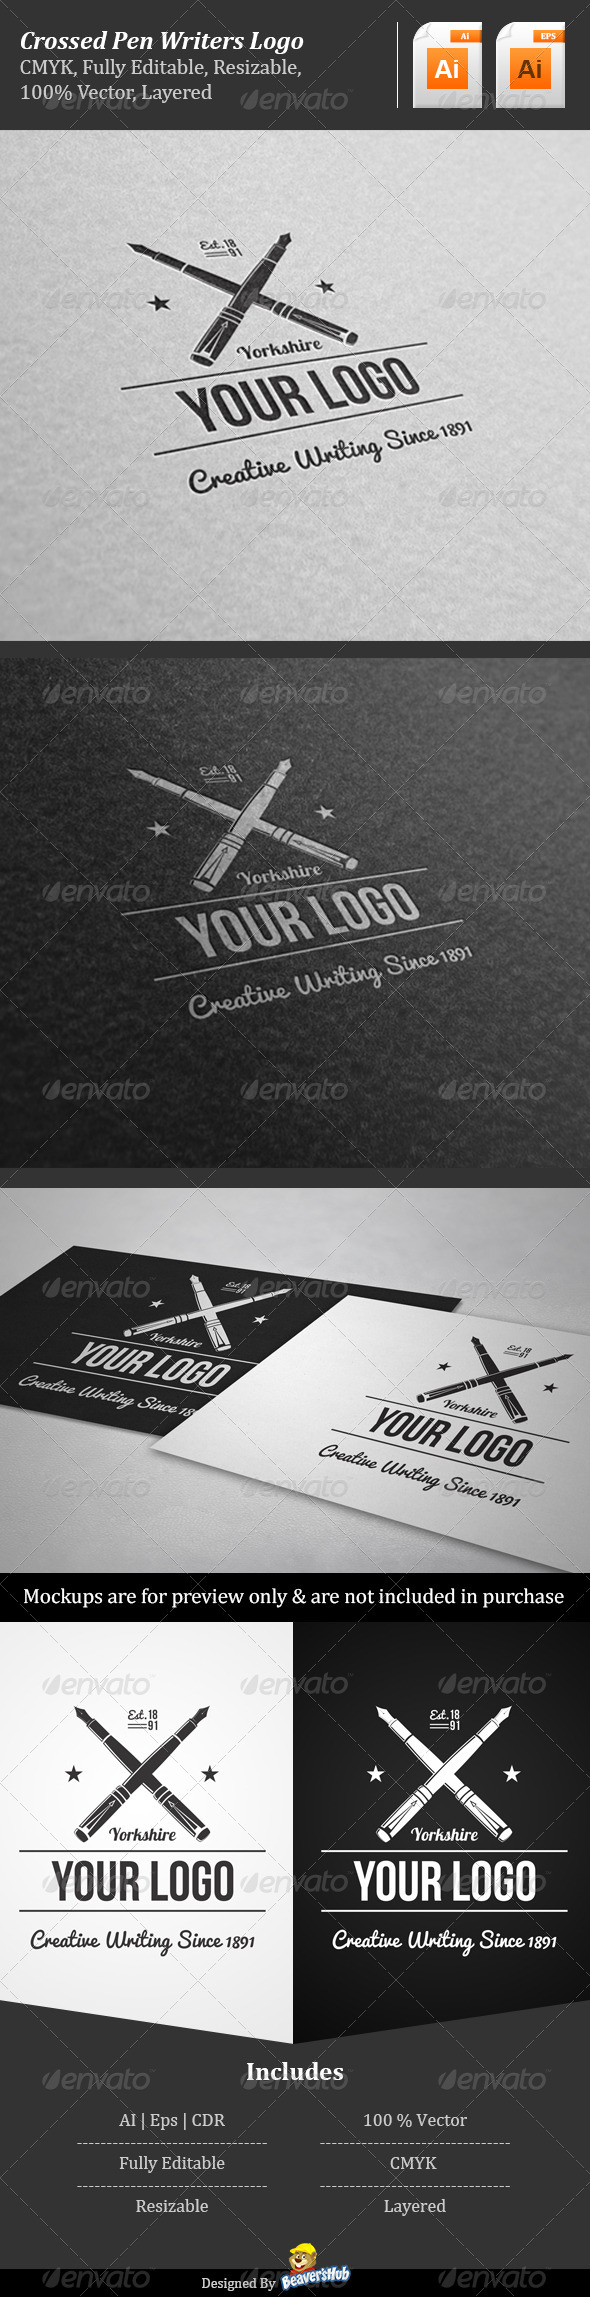 Crossed Pen Writers Logo - Objects Logo Templates